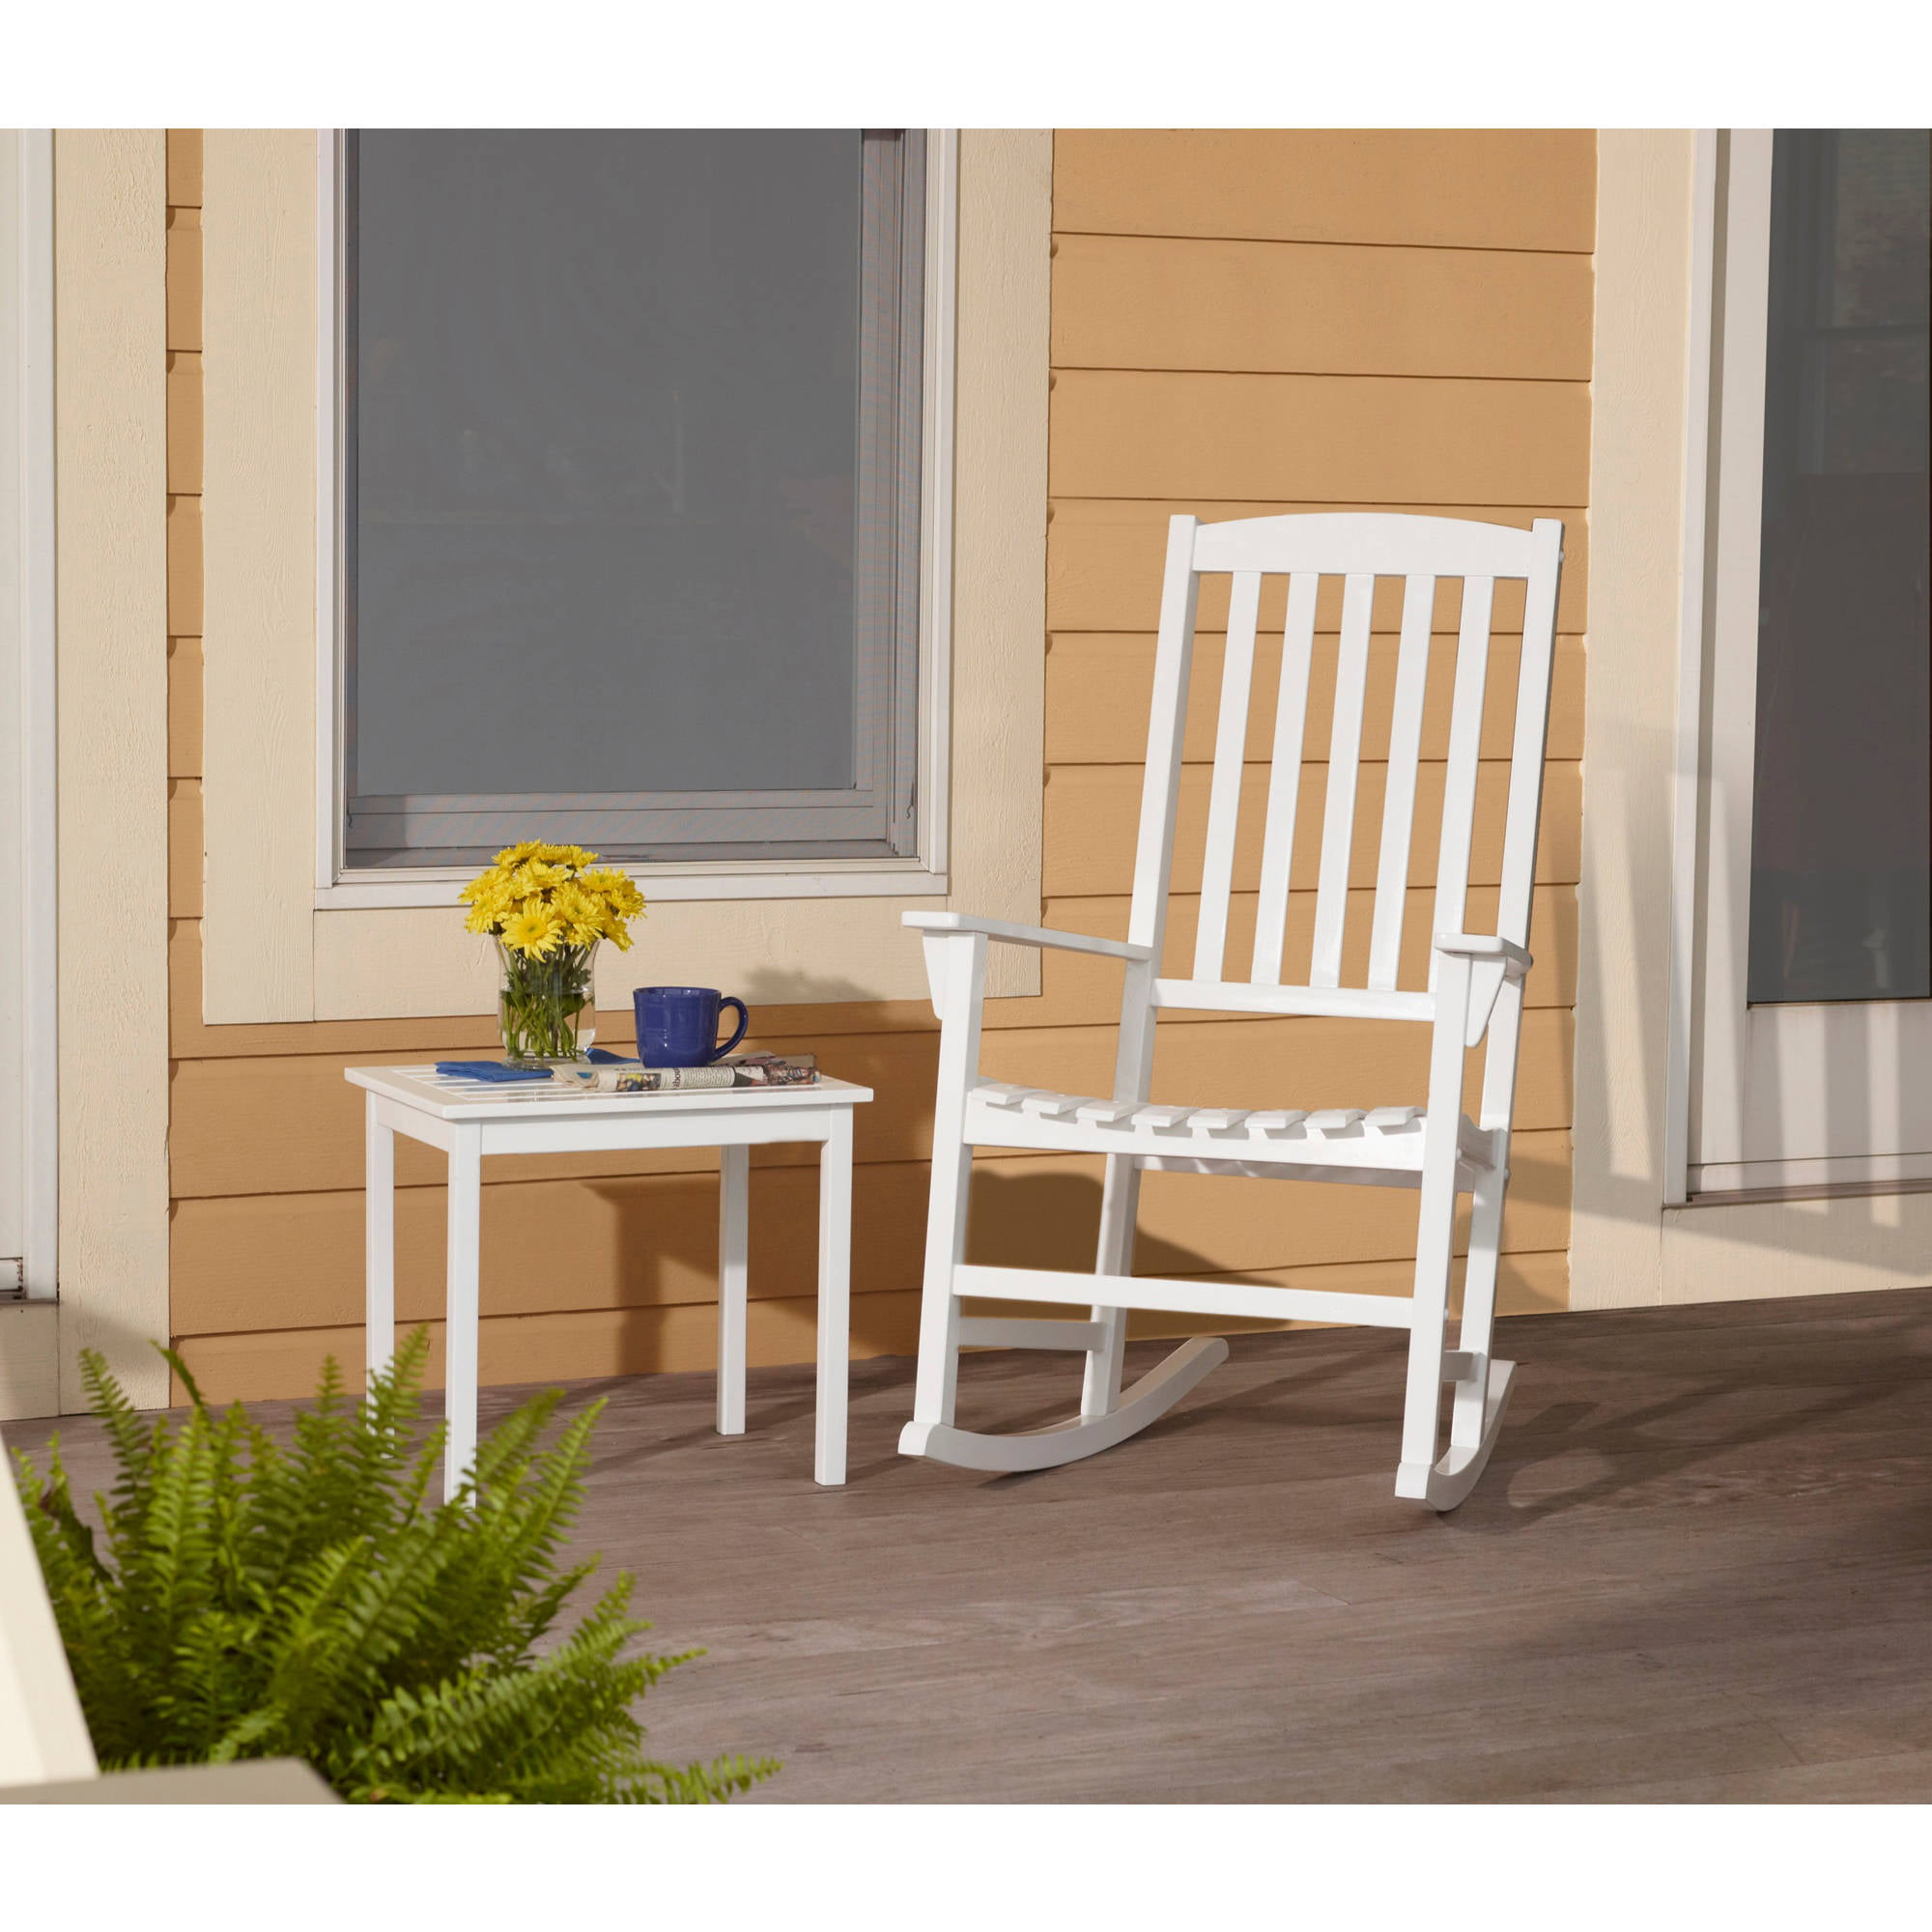 mainstays outdoor rocking chair, multiple colors - walmart